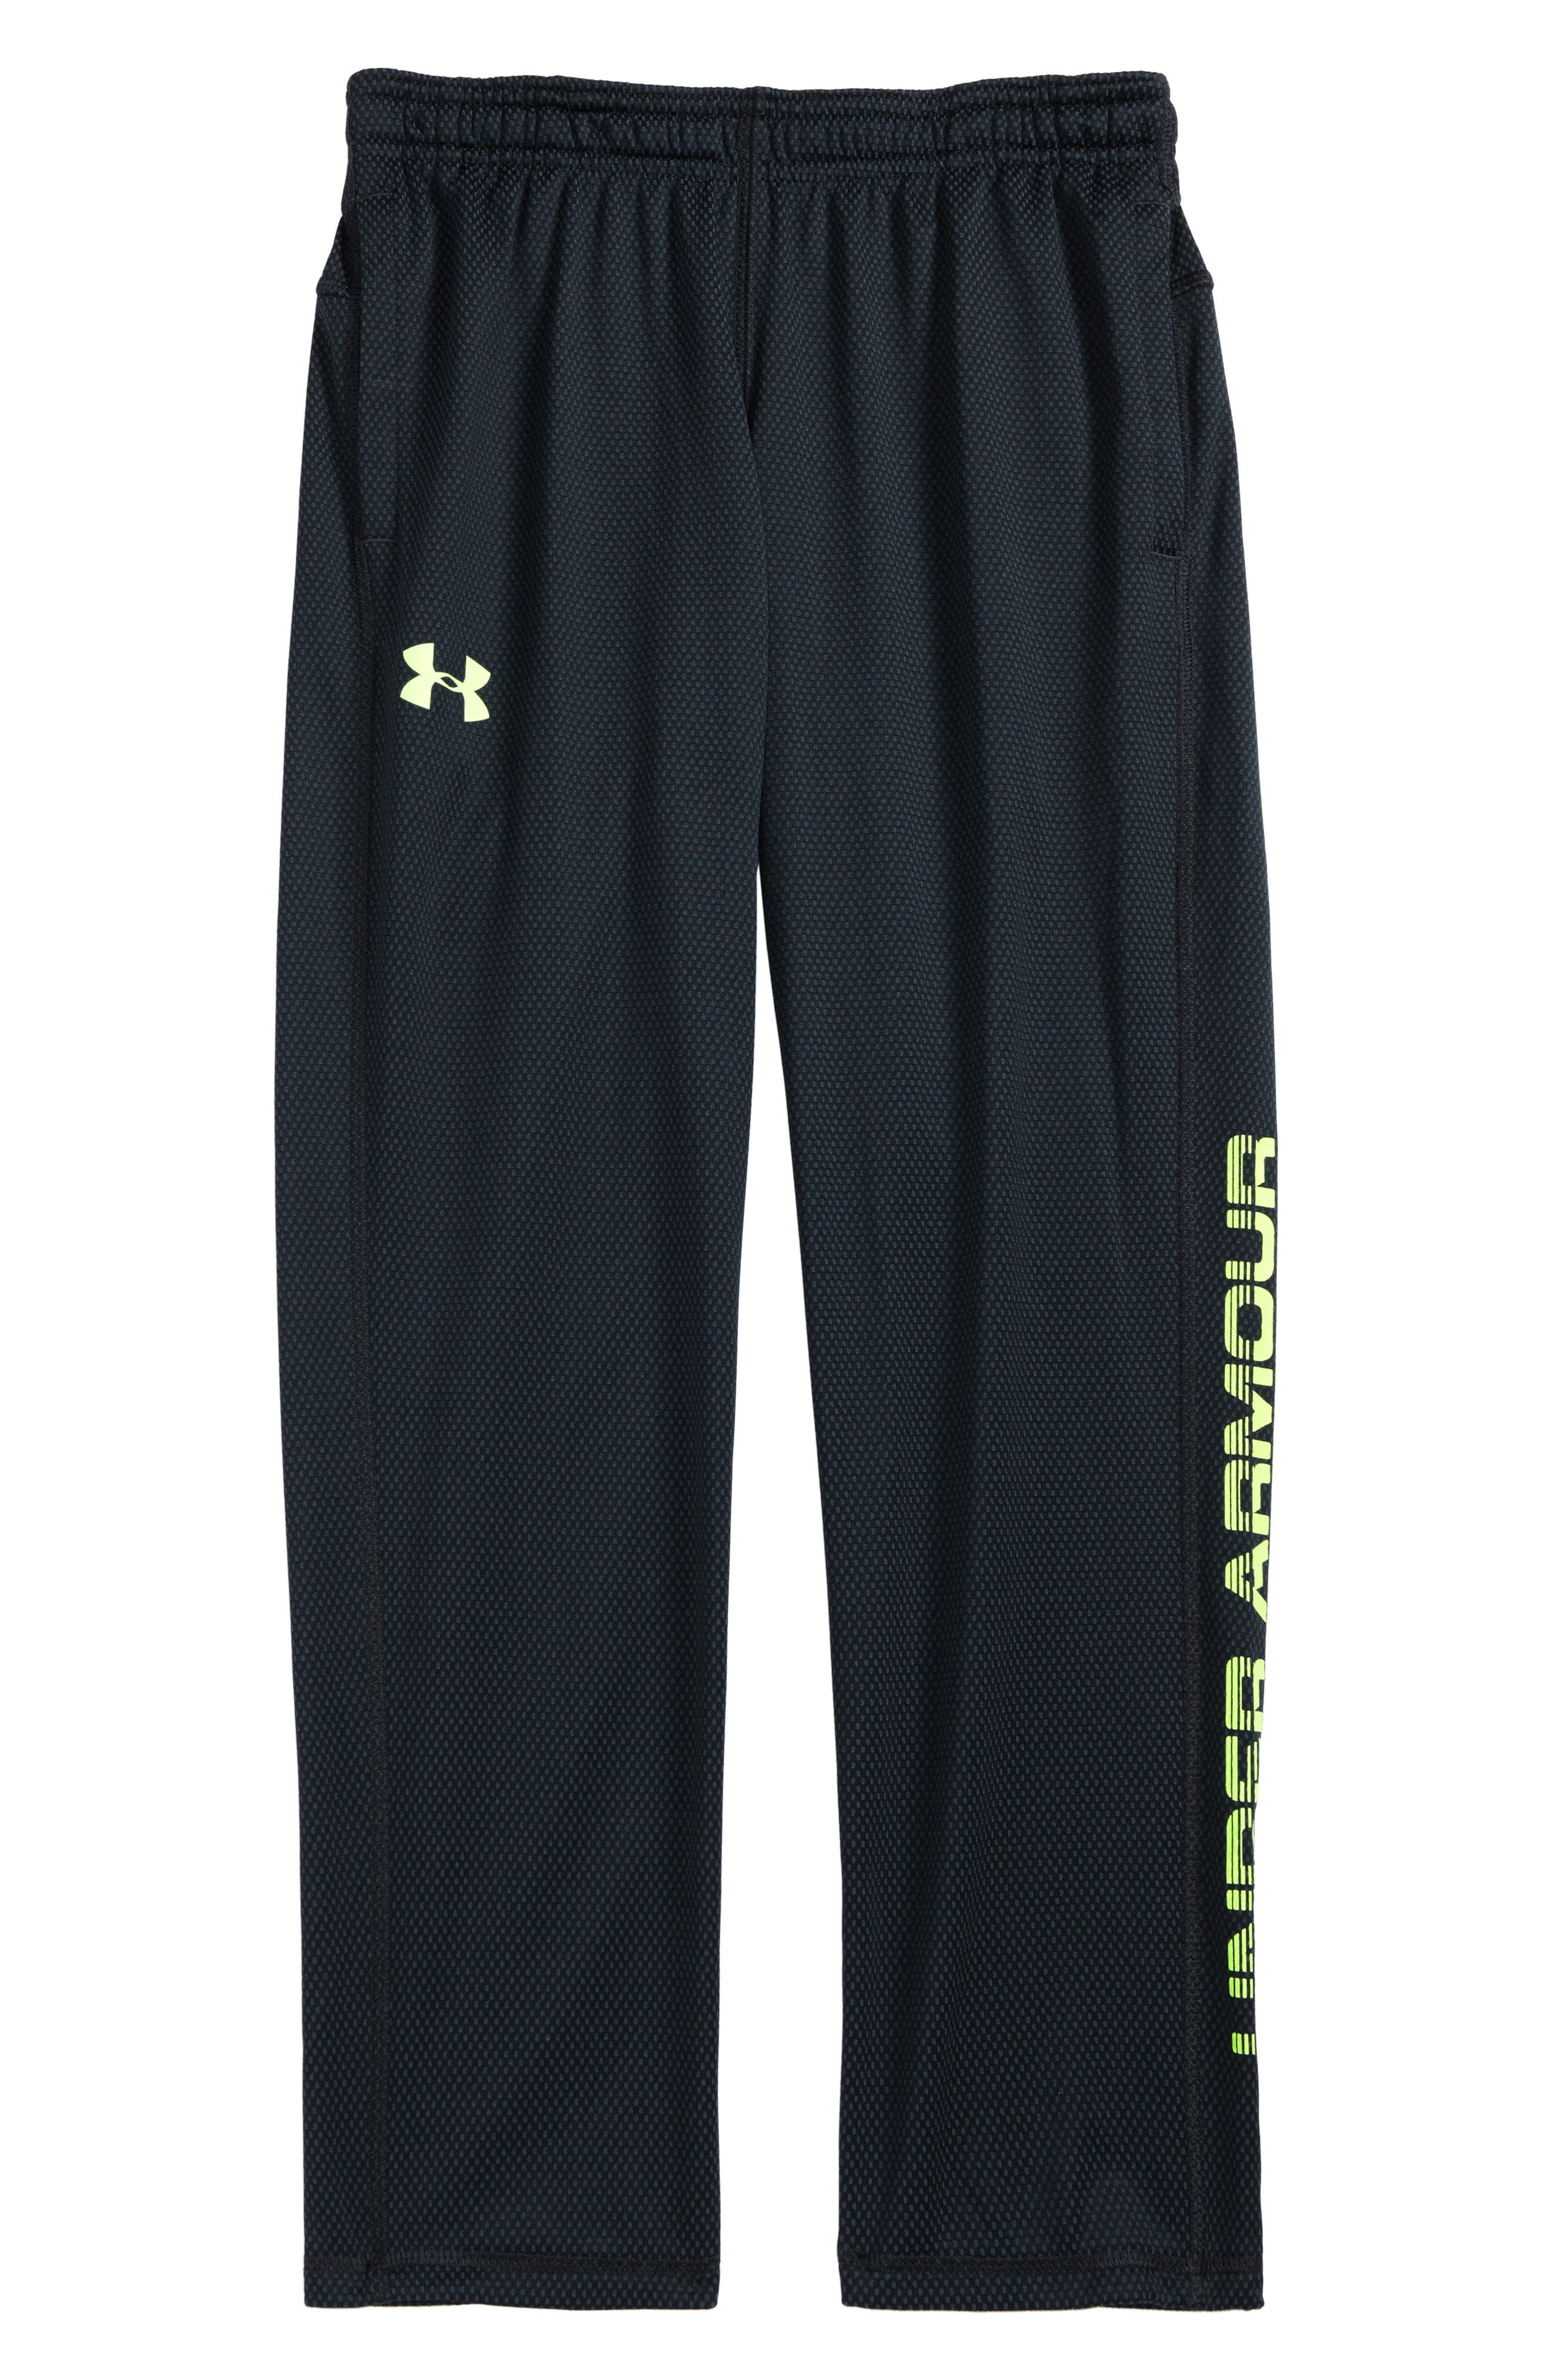 Tech Mesh Pants,                         Main,                         color, Anthracite/ Quirky Lime